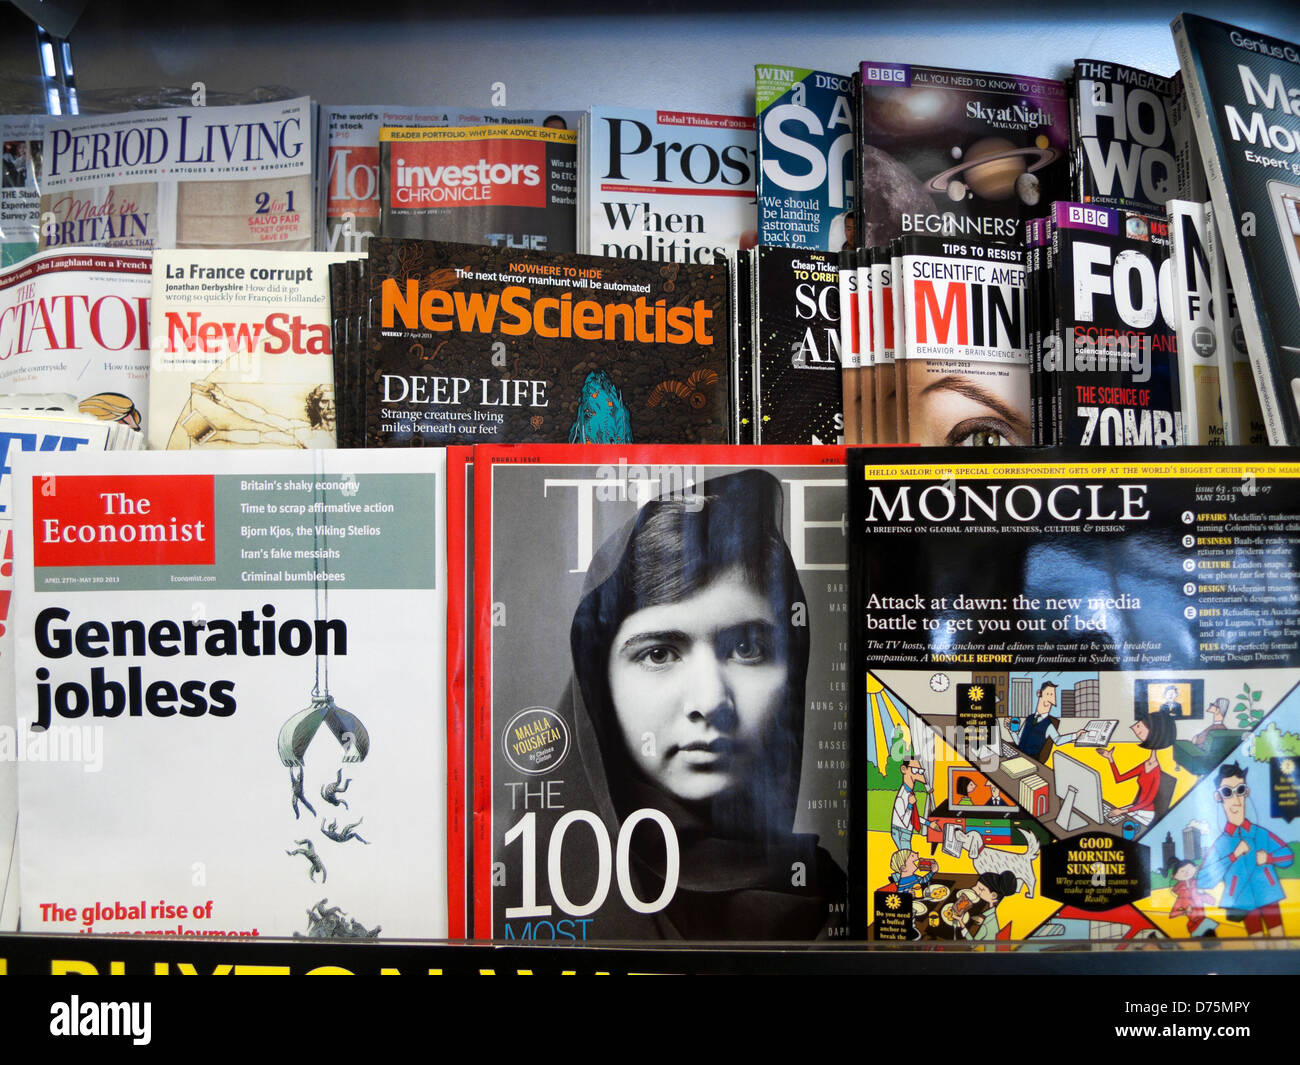 Malala Yousafzai on the cover of Time magazine on shelves next to The Economist, New Scientist & Monocle at - Stock Image